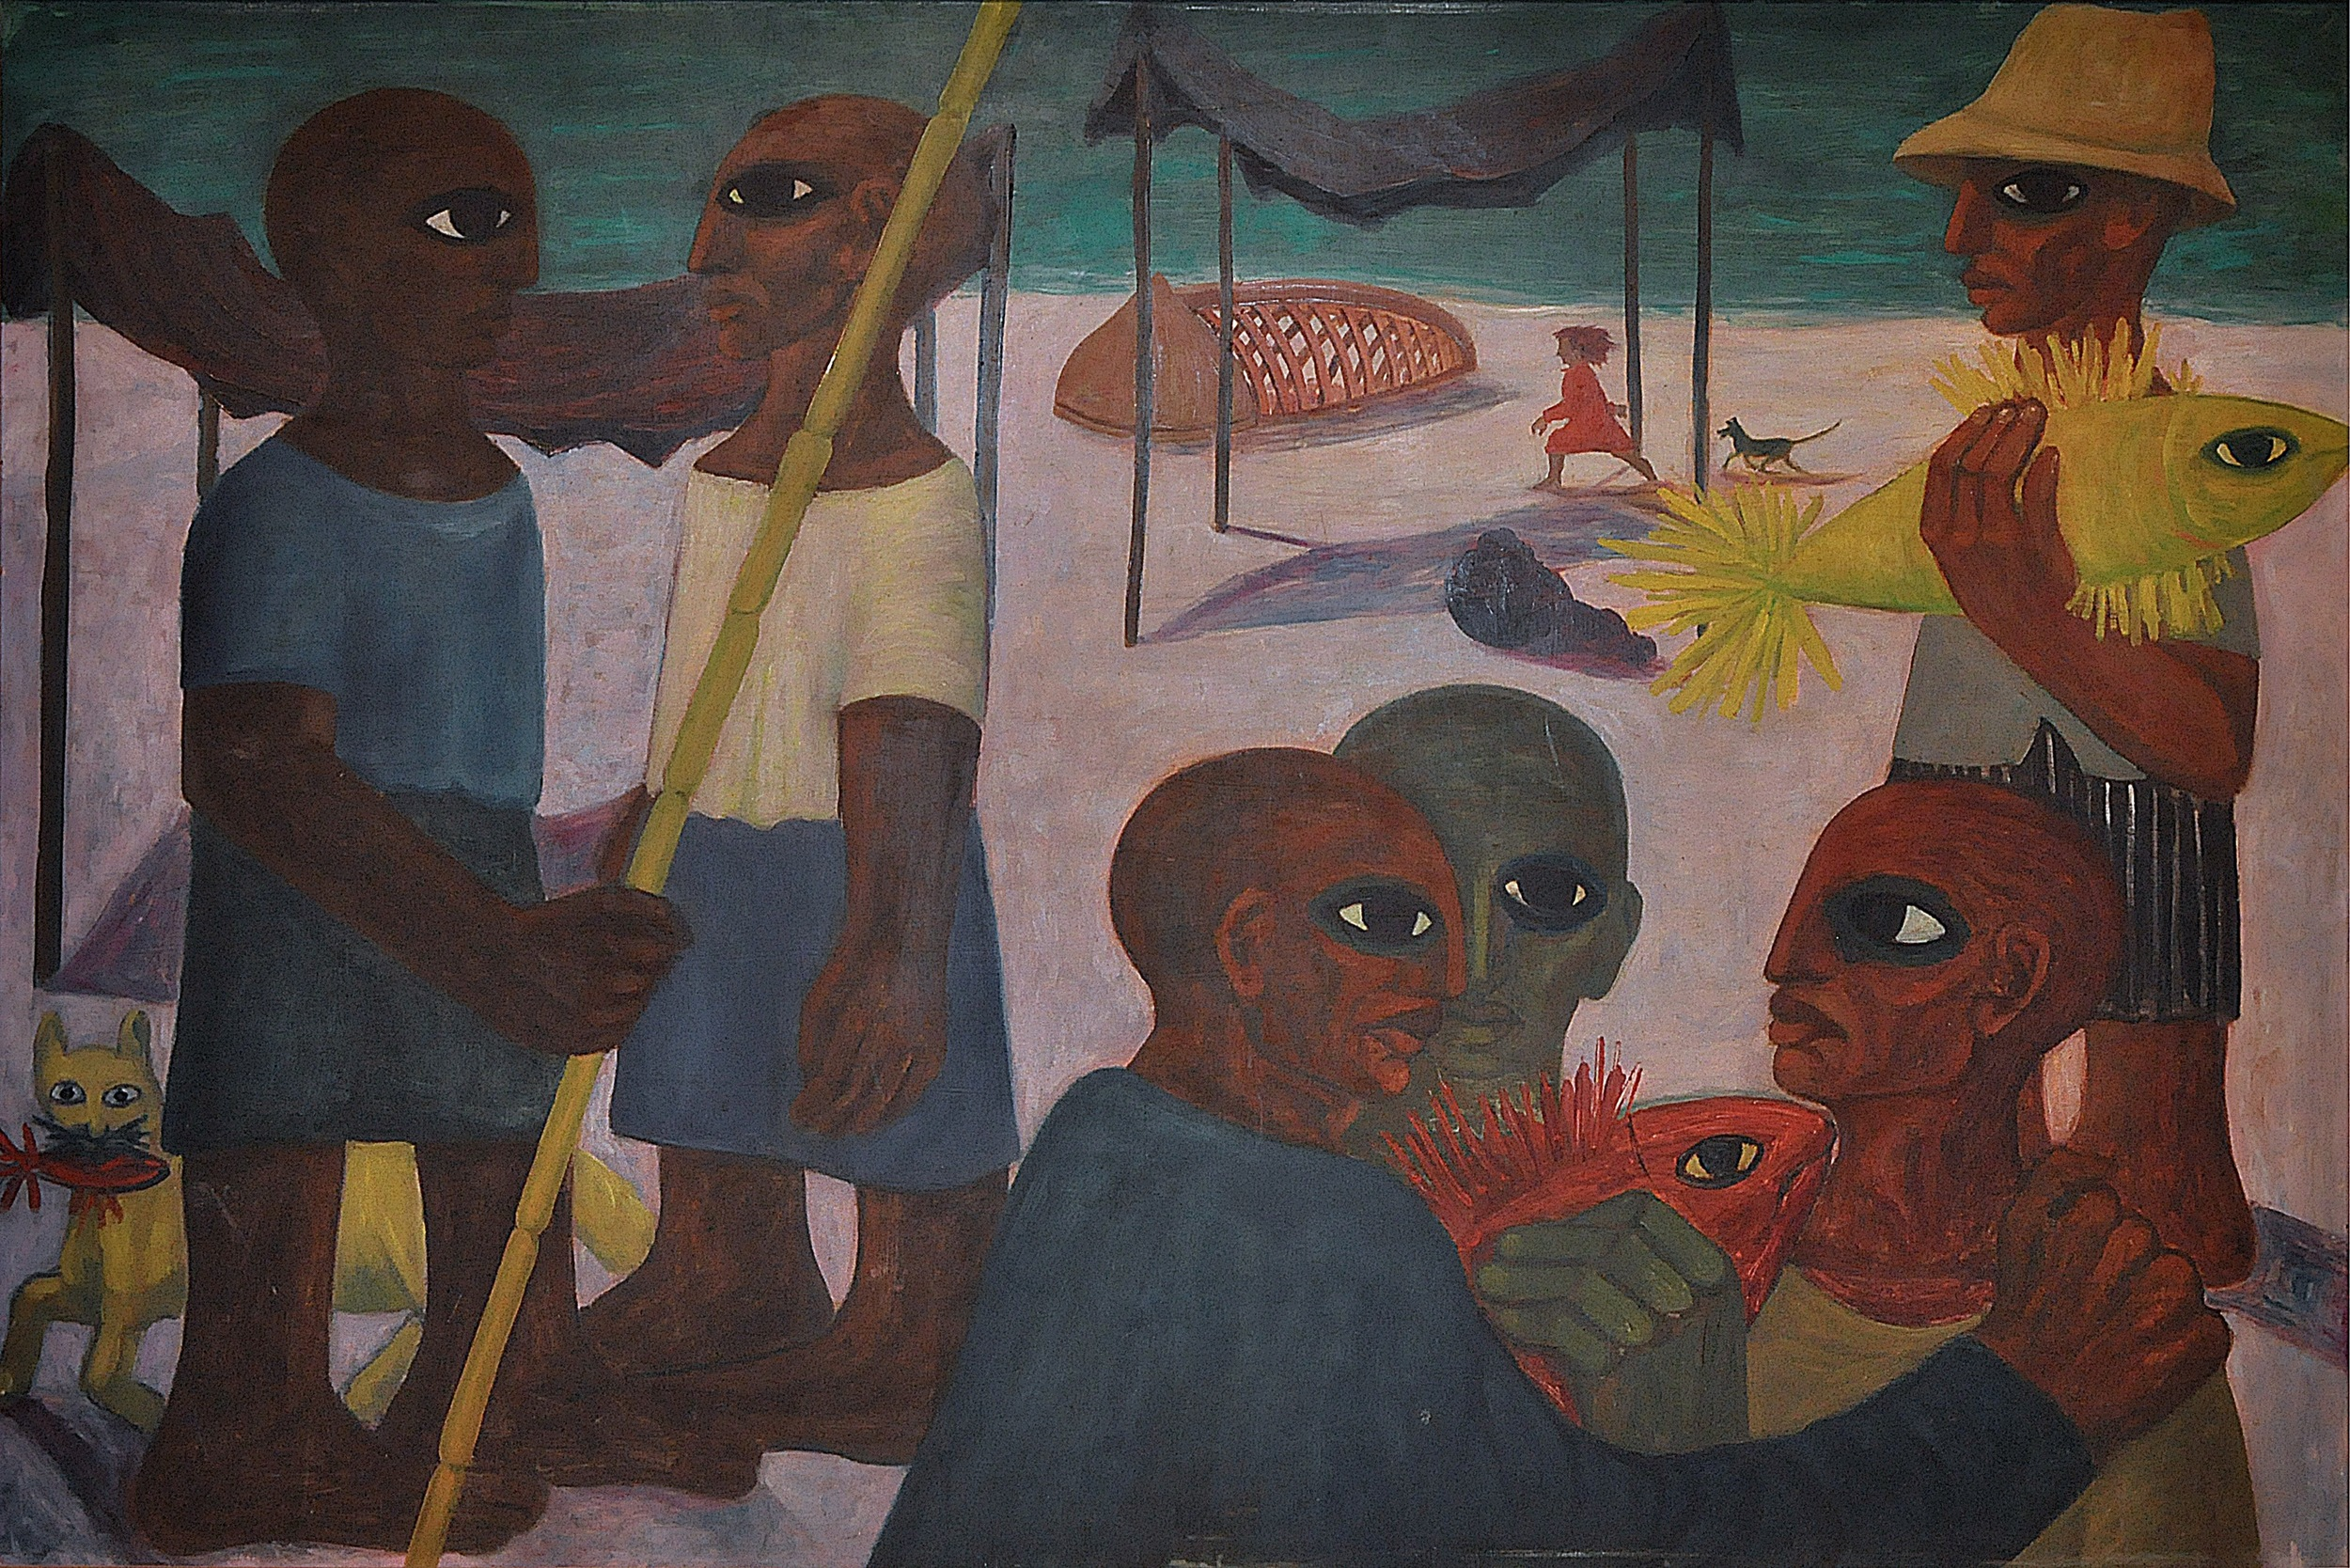 Ahmed Morsi, The Fishermen, 1956, Oil on wood, 150 x 100 cm, Mathaf: Arab Museum of Modern Art Collection.